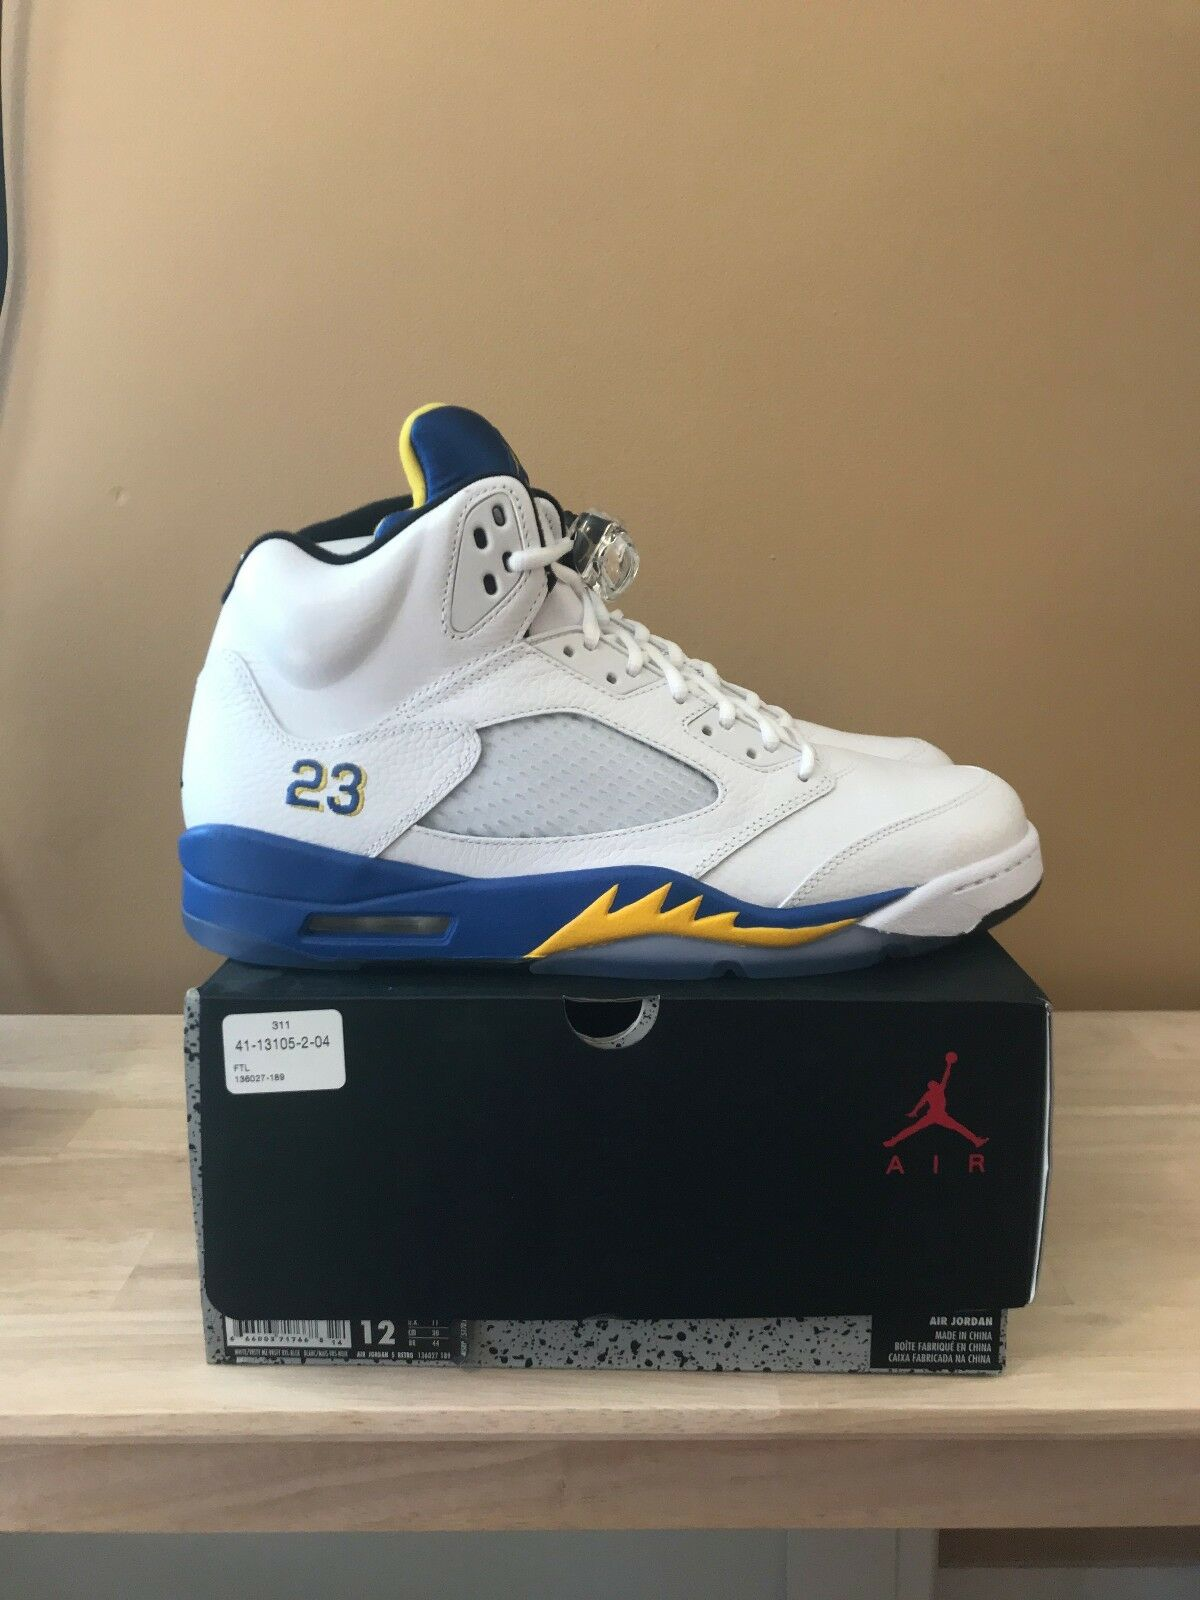 3f0aaf6ac6f Nike Mens Air Jordan 5 Retro DS Size 12 With Receipt Laney  nxdbnd1768-Athletic Shoes